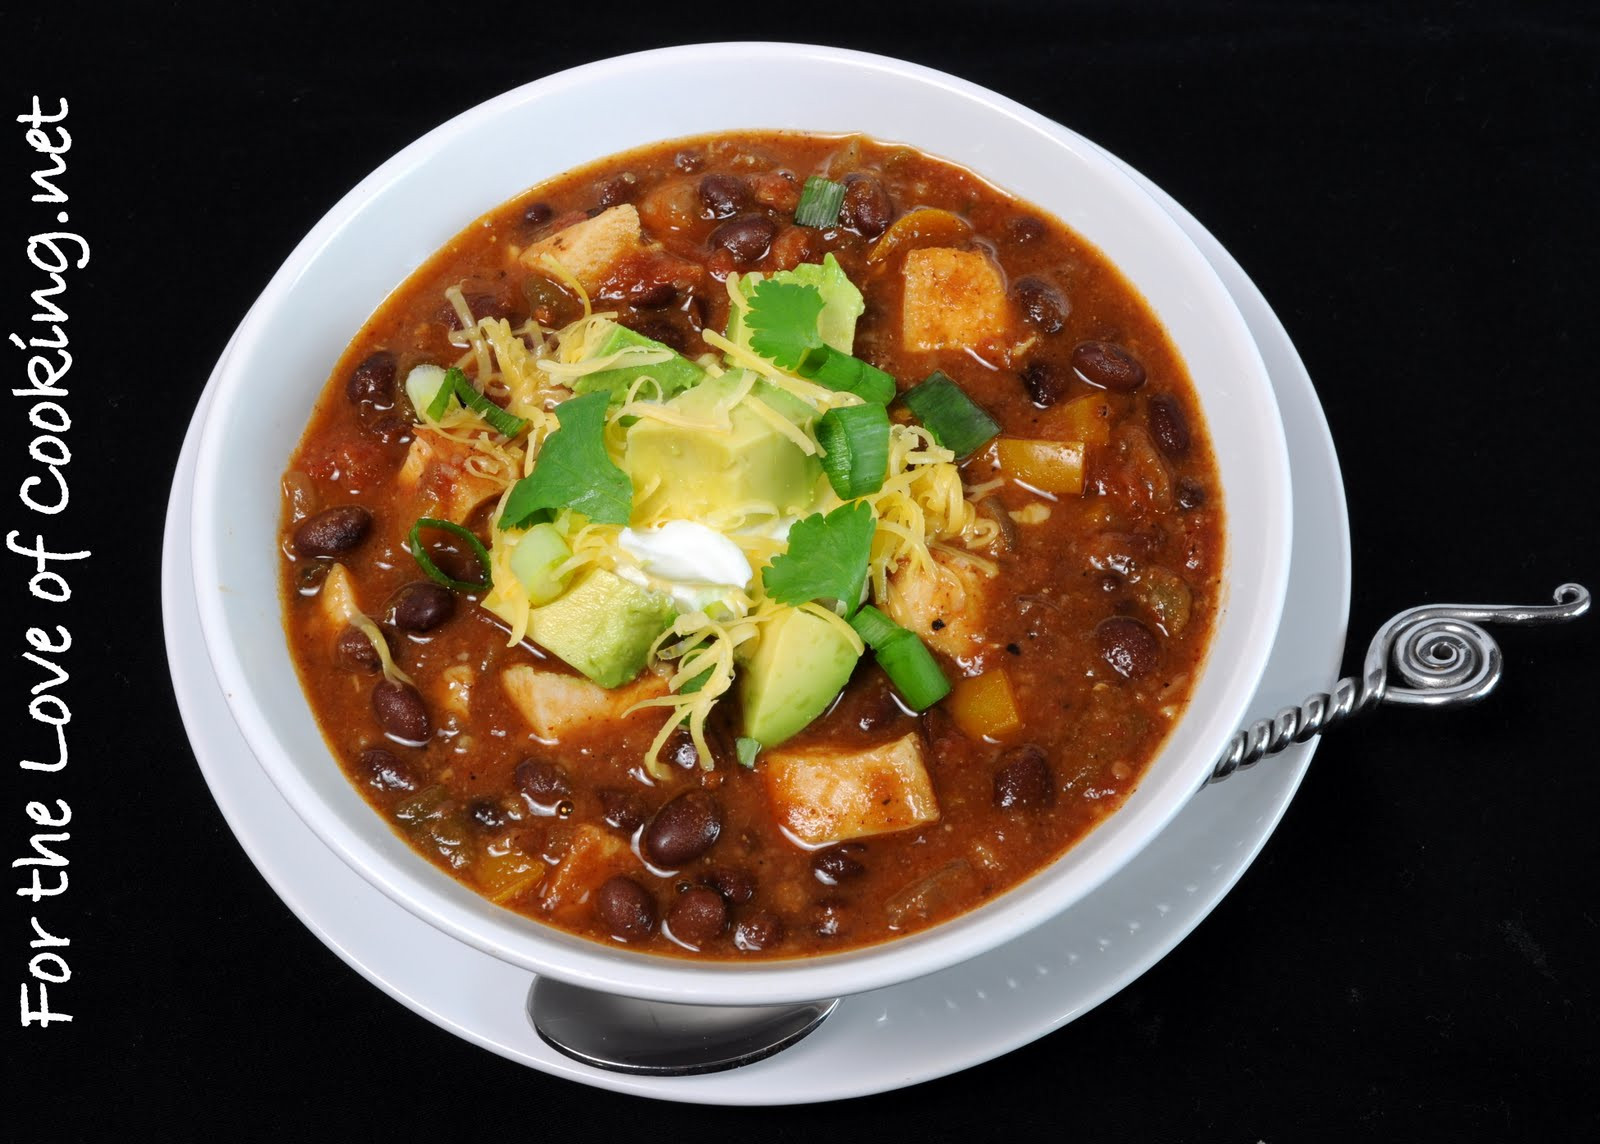 Black Bean Chicken Chili  Chili with Black Beans and Grilled Chicken